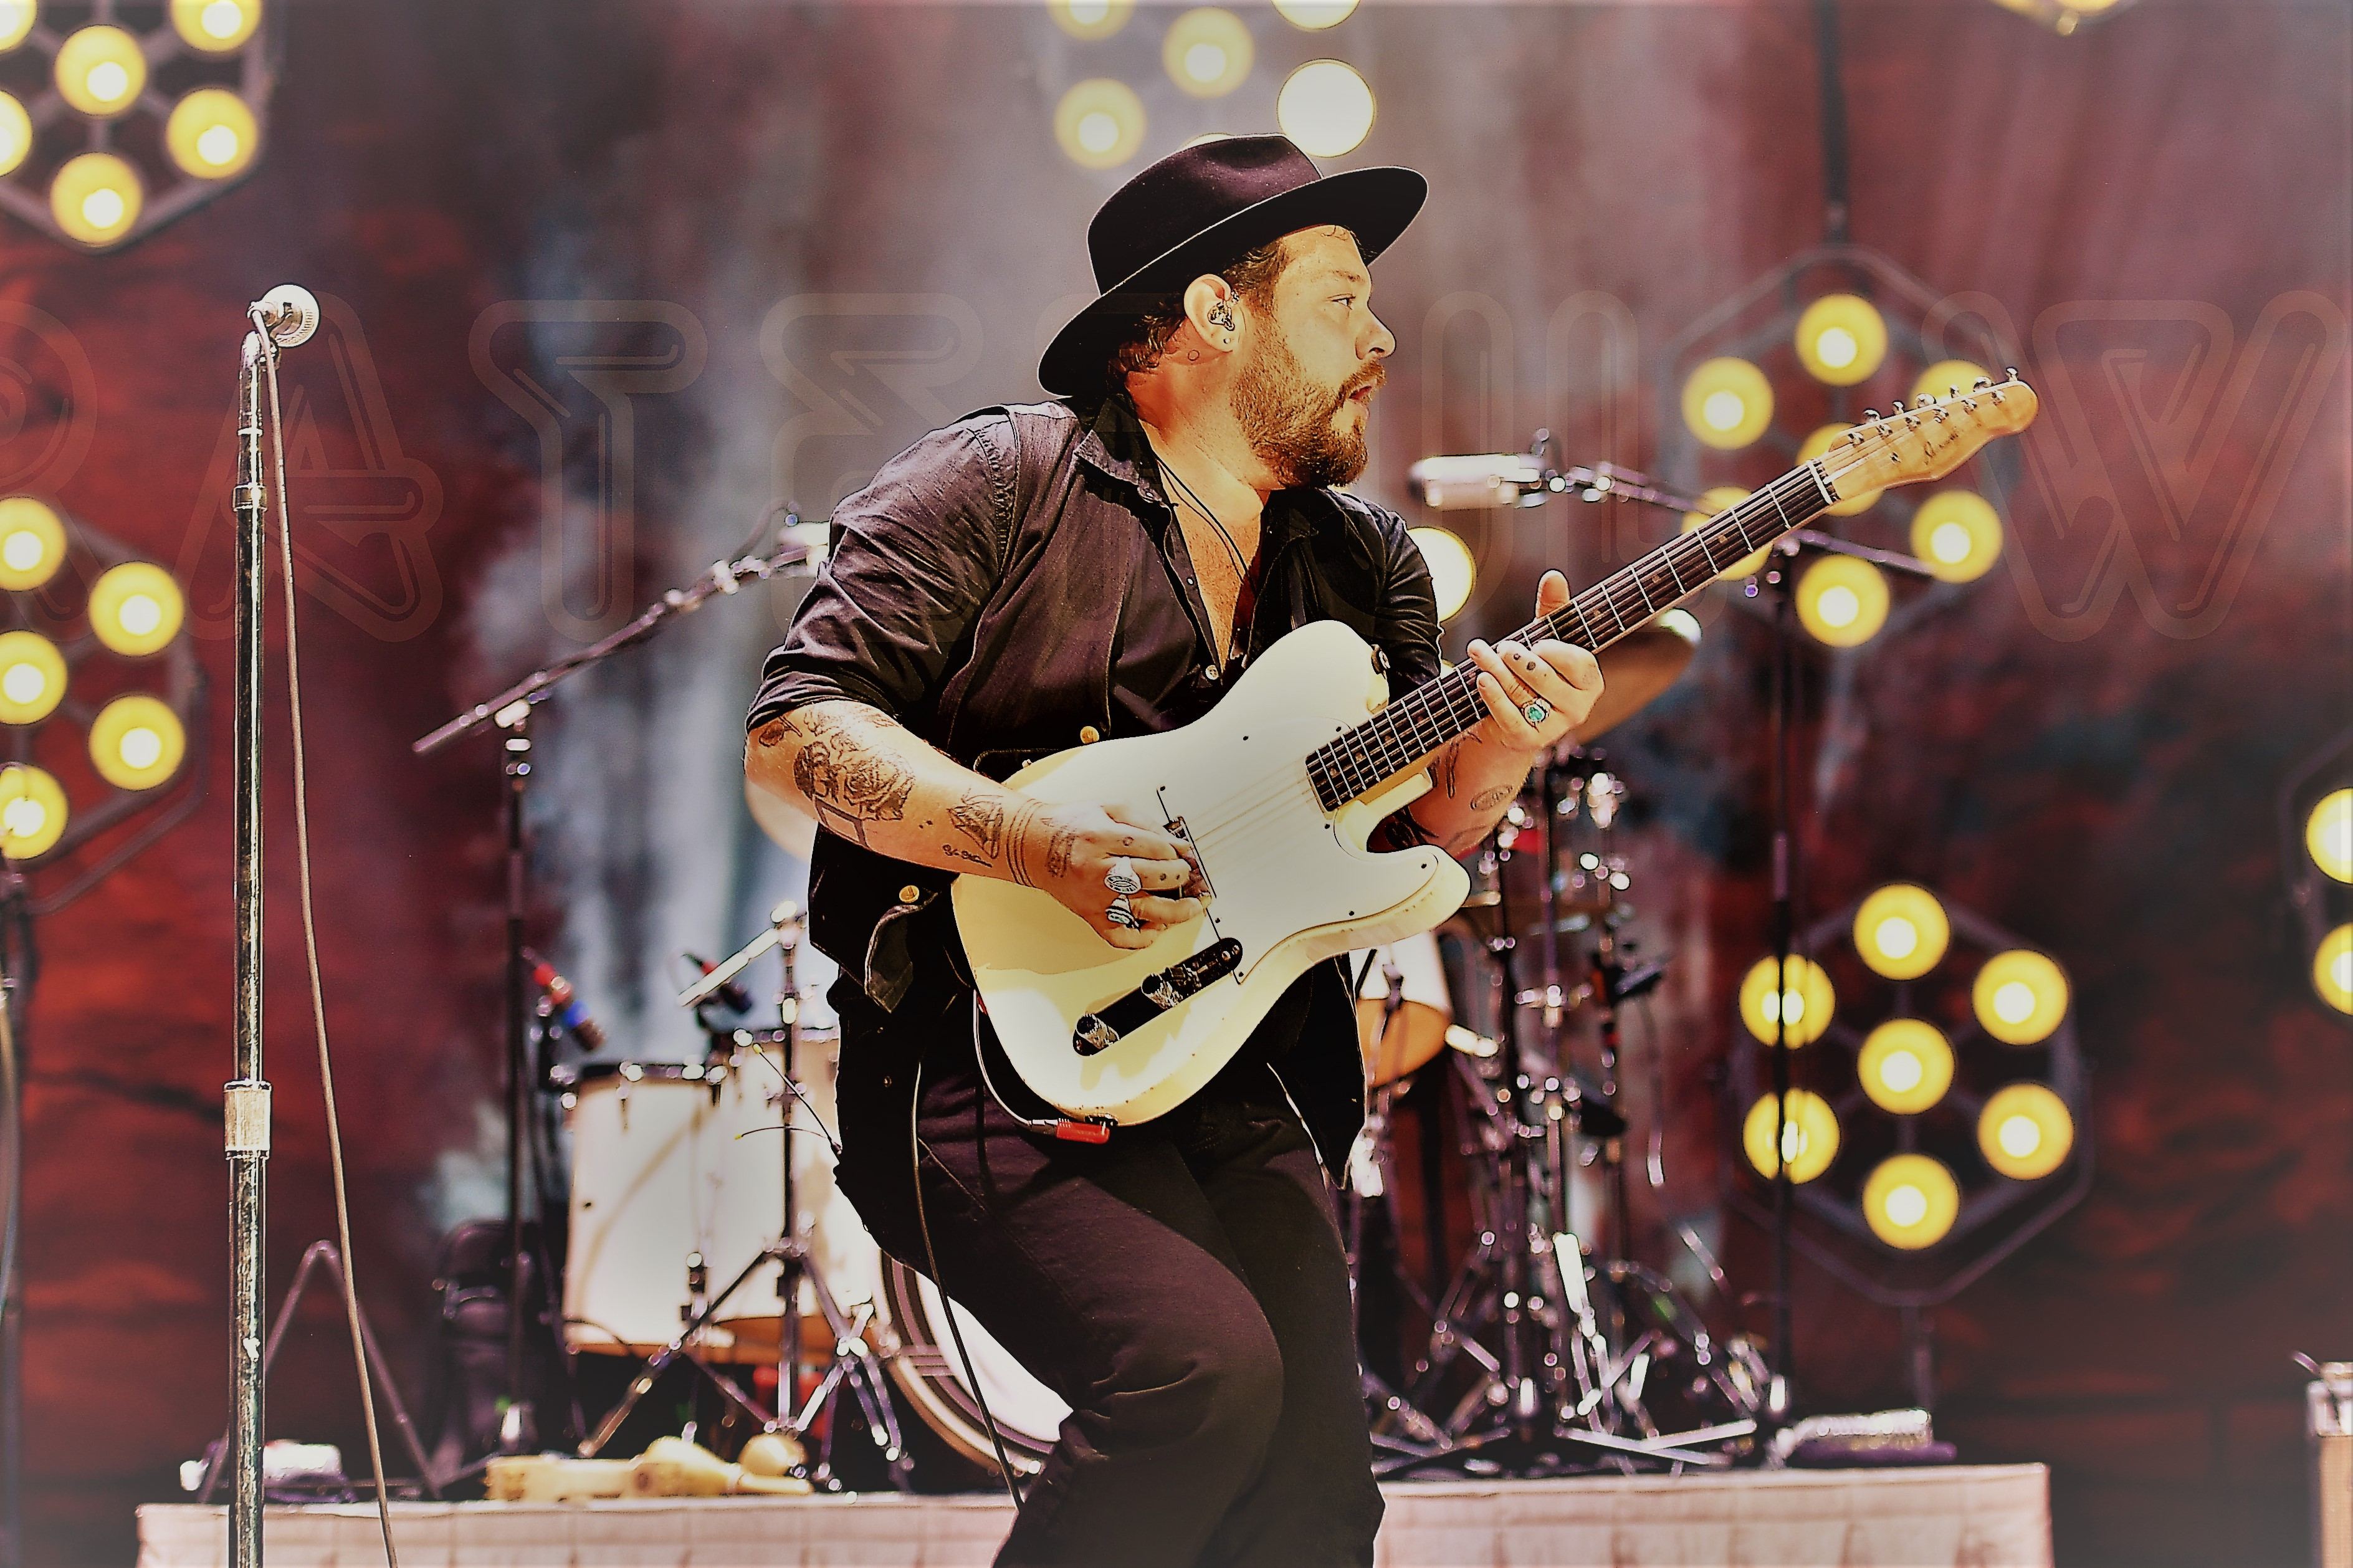 Nathaniel Rateliff to perform socially distanced shows at Red Rocks Amphitheatre